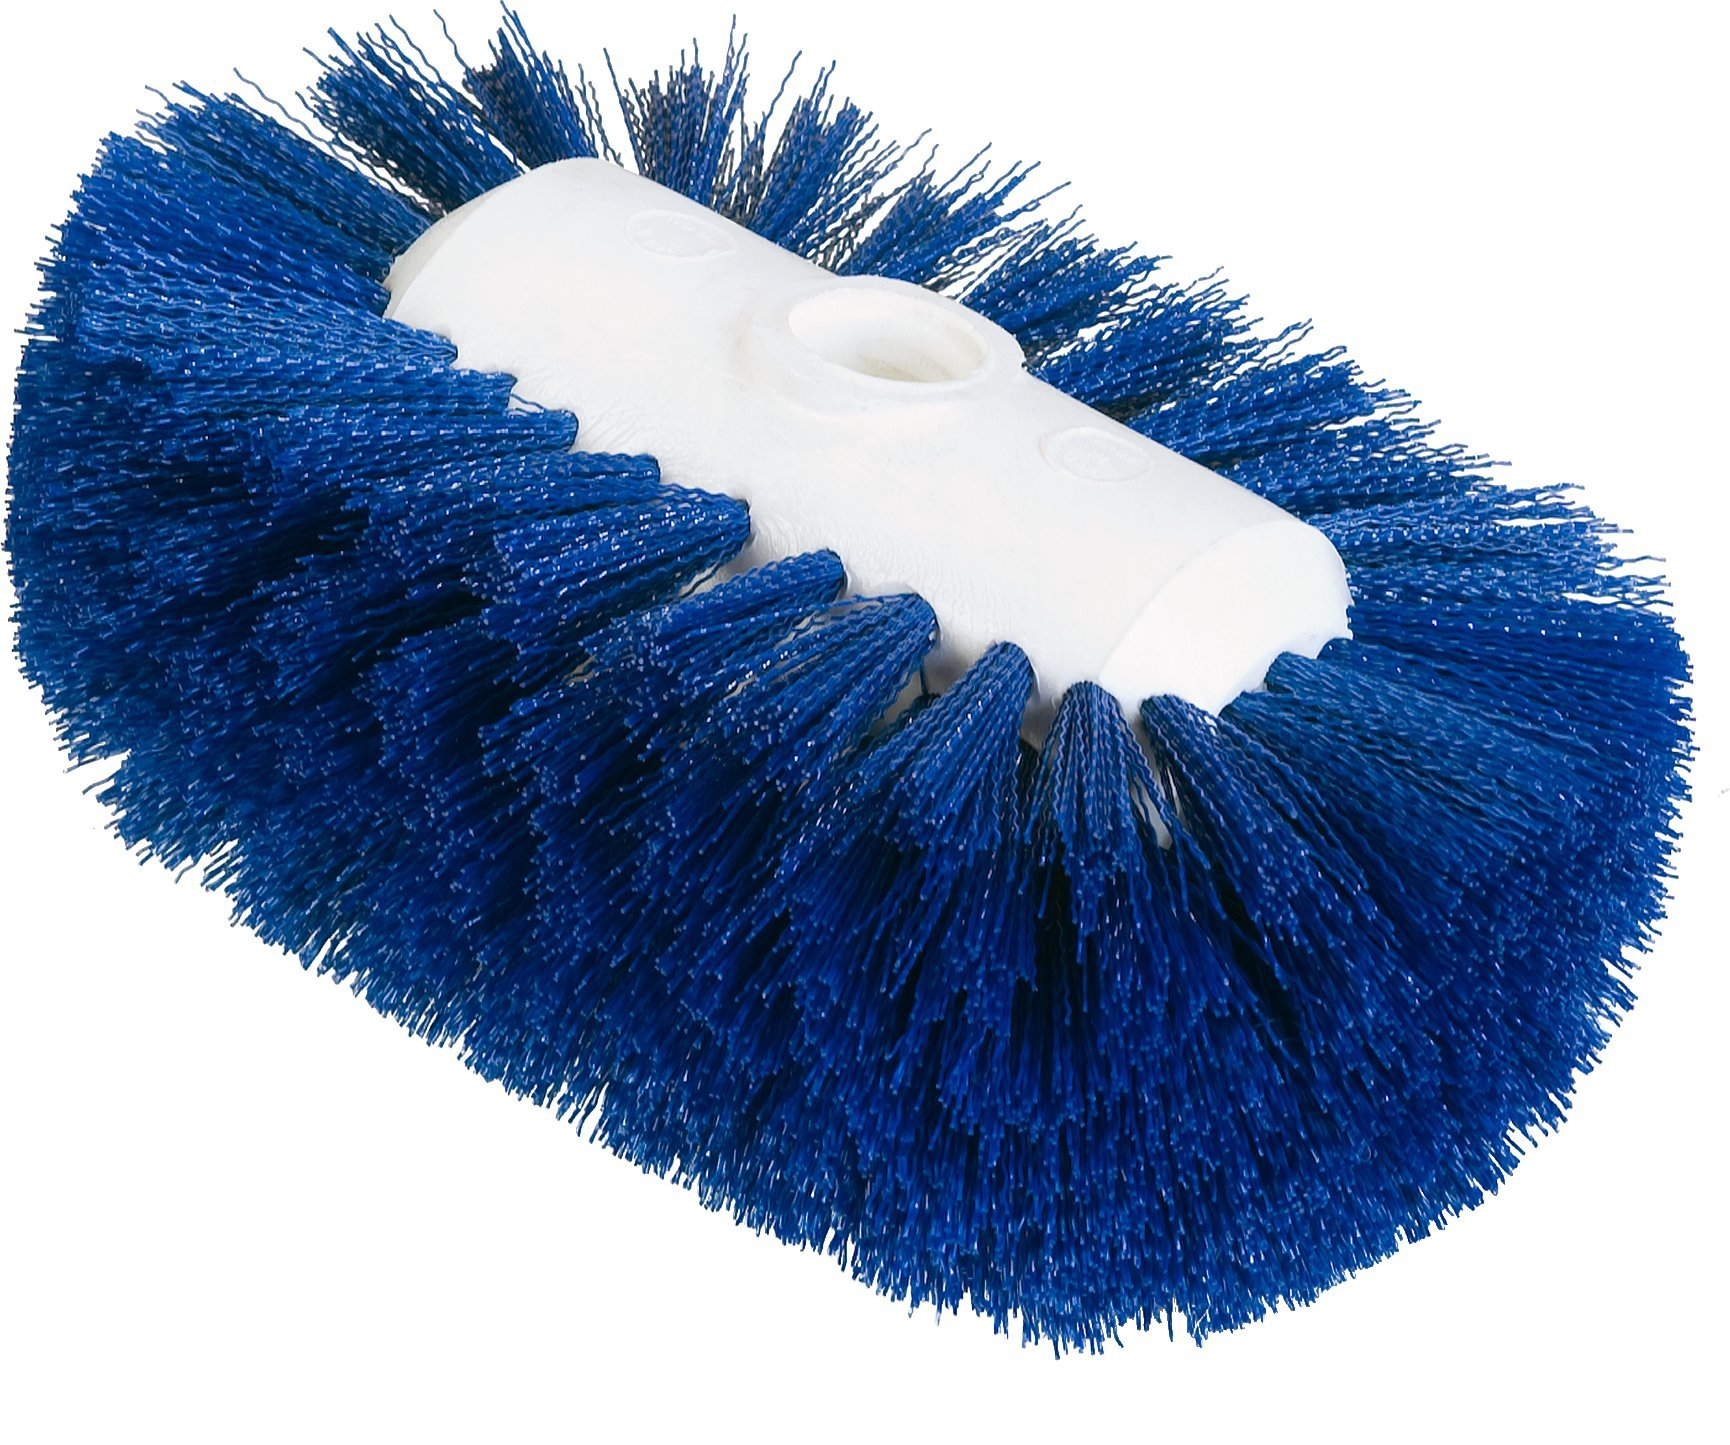 Carlisle 4004114 Sparta Spectrum Flare Head Tank and Kettle Brush, Blue Polyester Bristles, 7-1/2'' L x 5-1/2'' W (Case of 12)